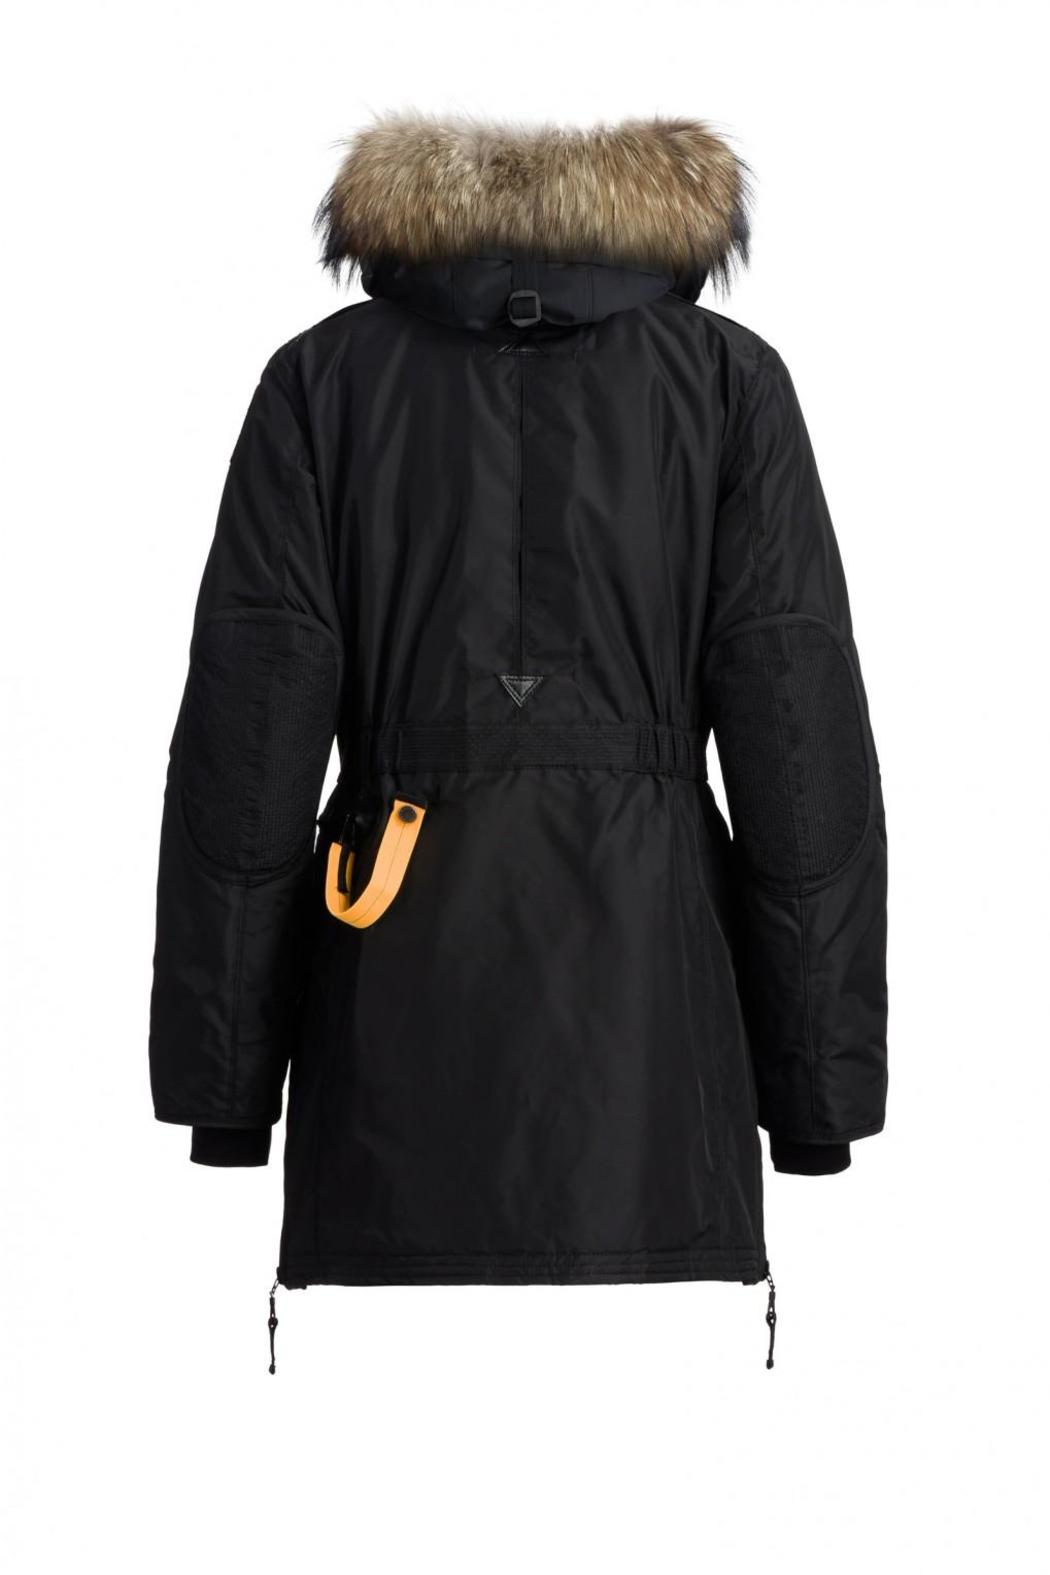 parajumpers velvet coat